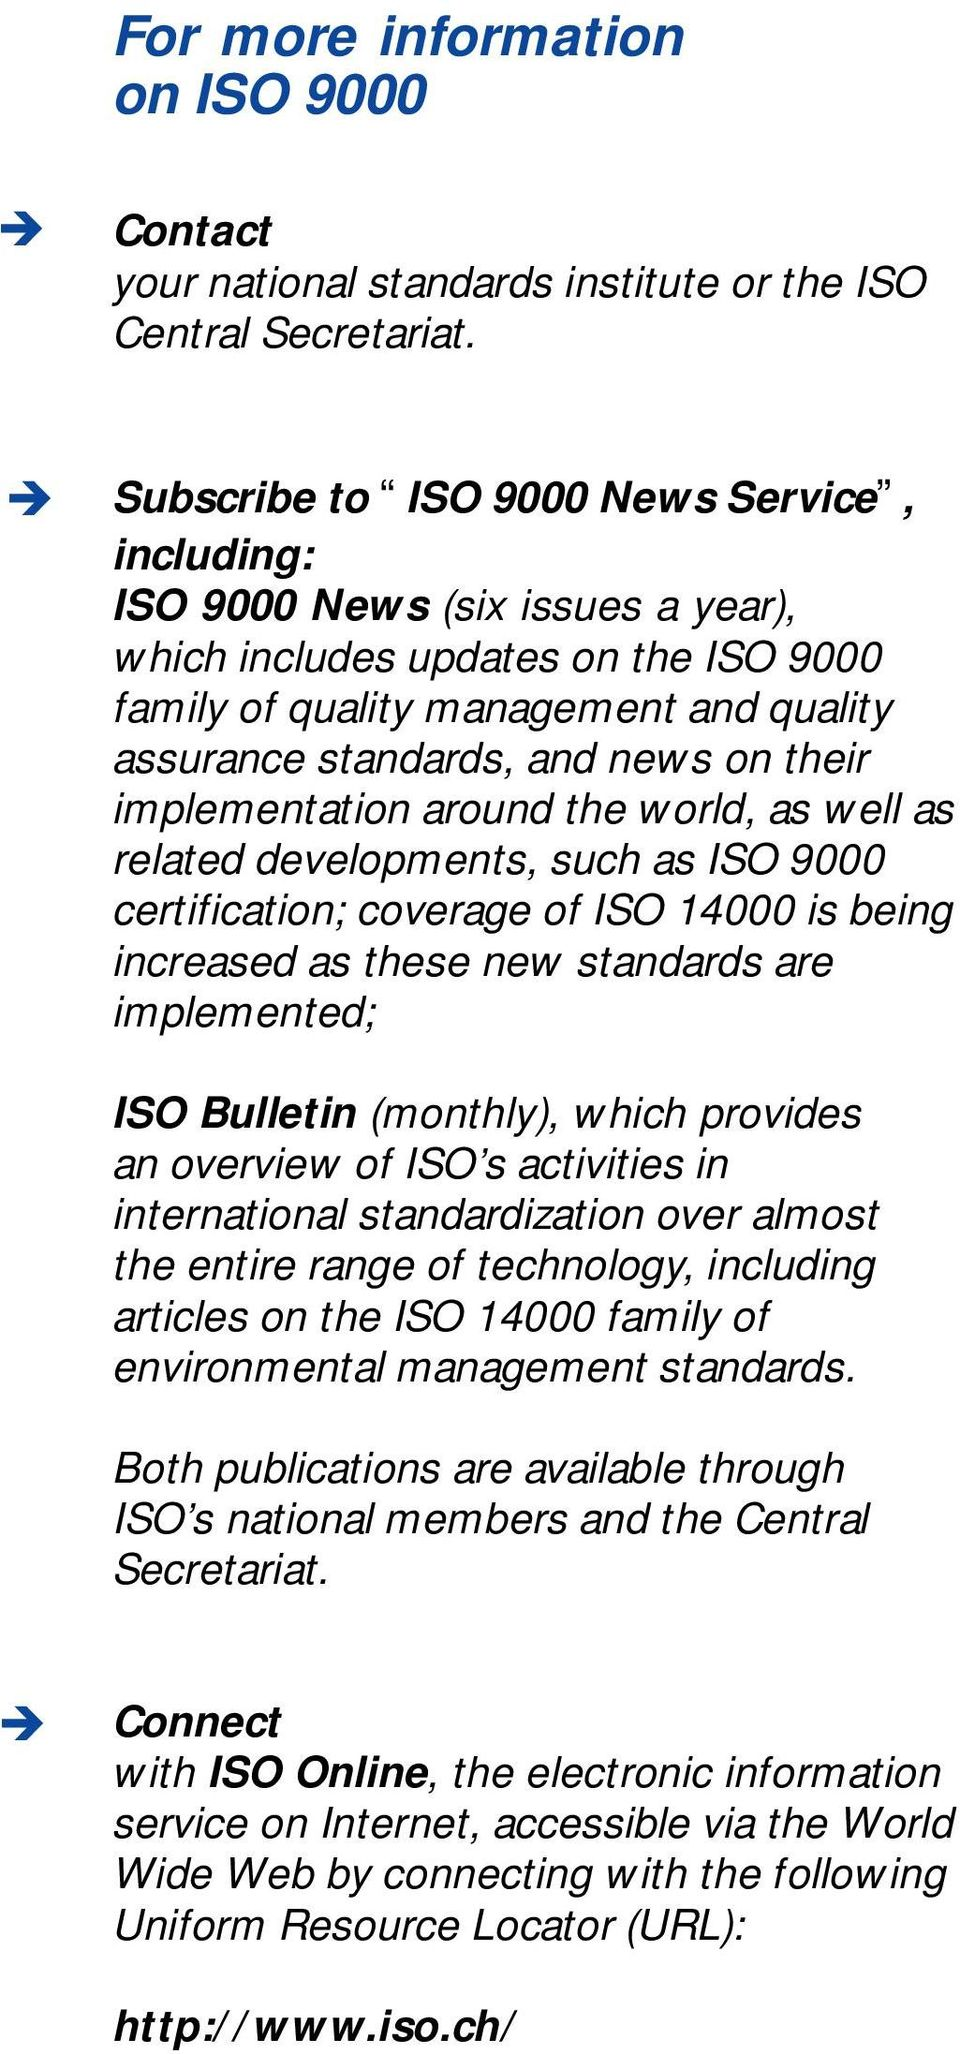 their implementation around the world, as well as related developments, such as ISO 9000 certification; coverage of ISO 14000 is being increased as these new standards are implemented; ISO Bulletin